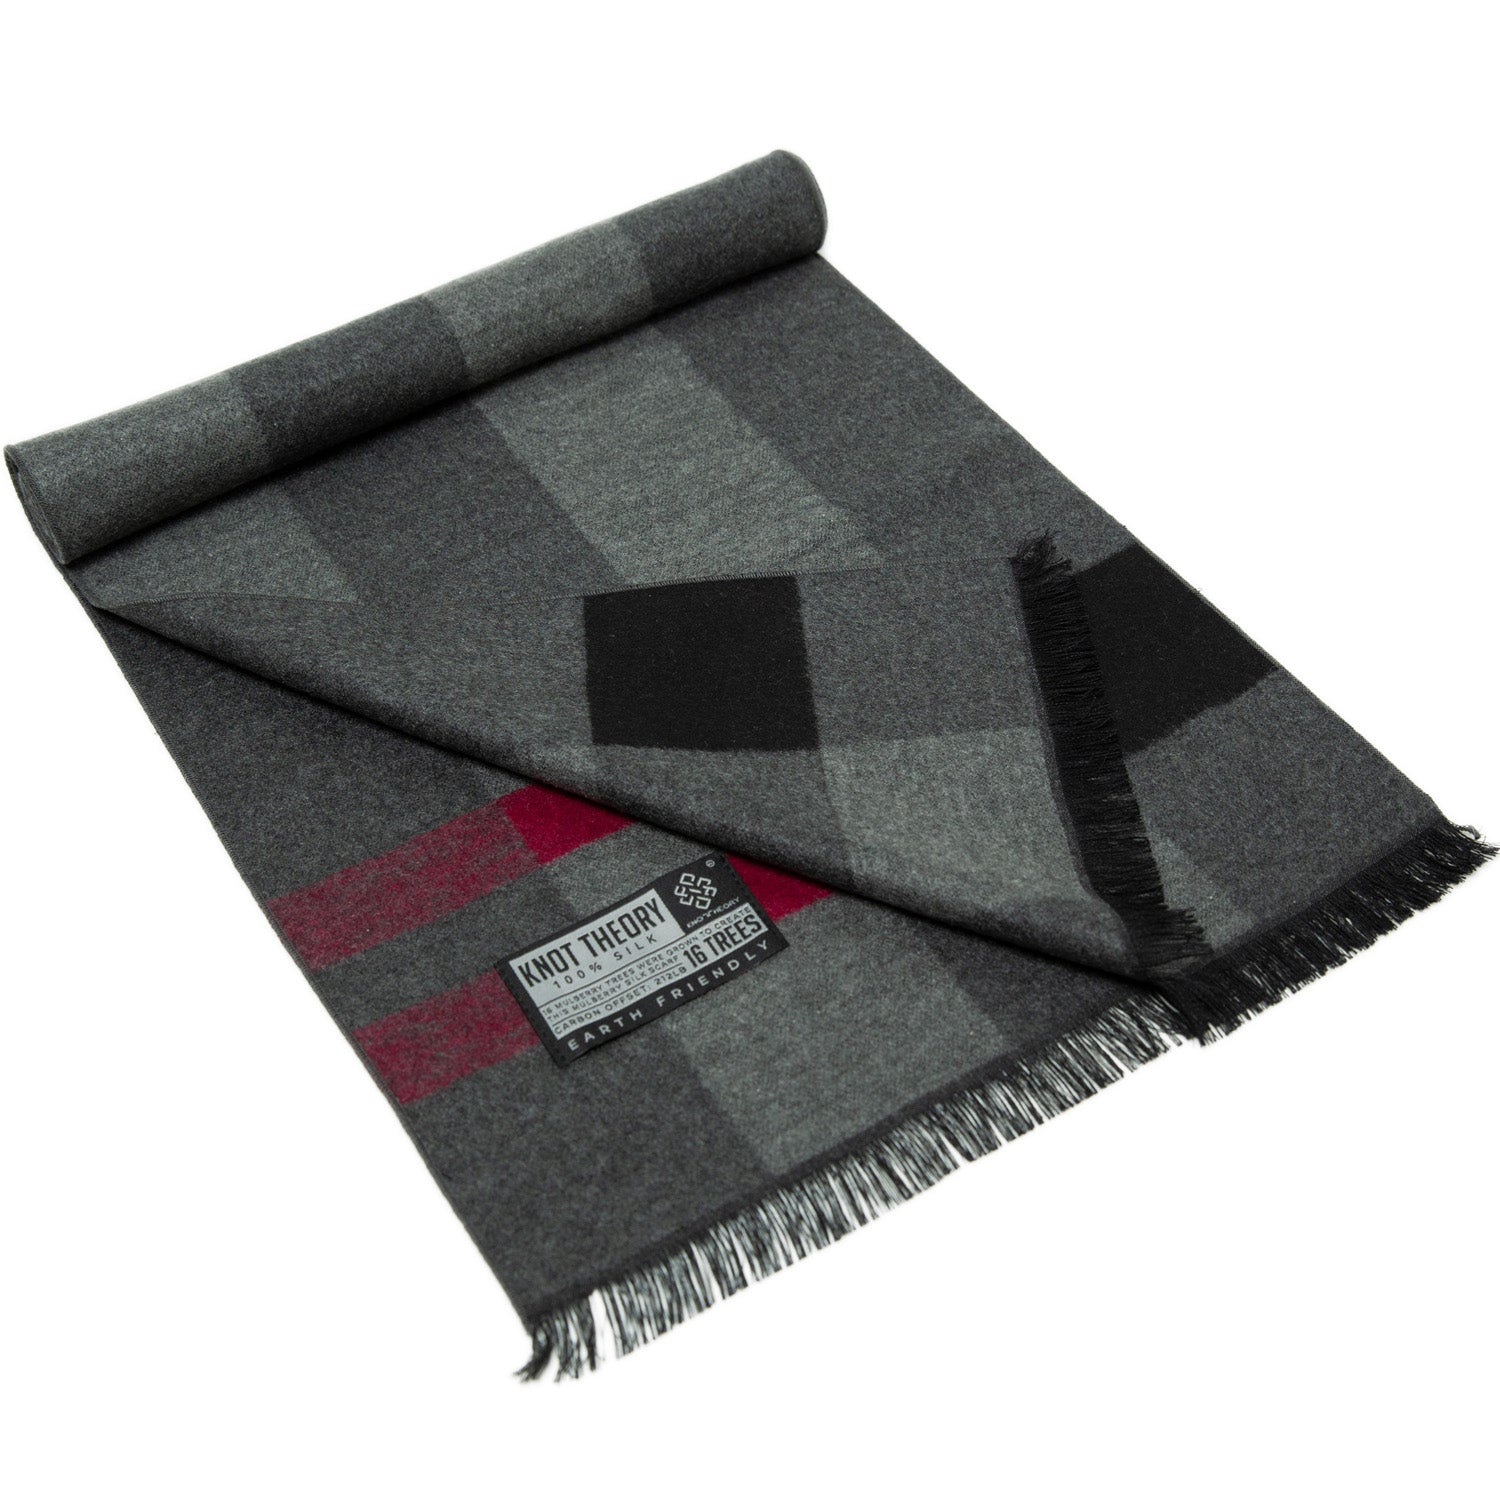 Red Grey Tartan Eco Scarf - Softer than Cashmere 100% Silk